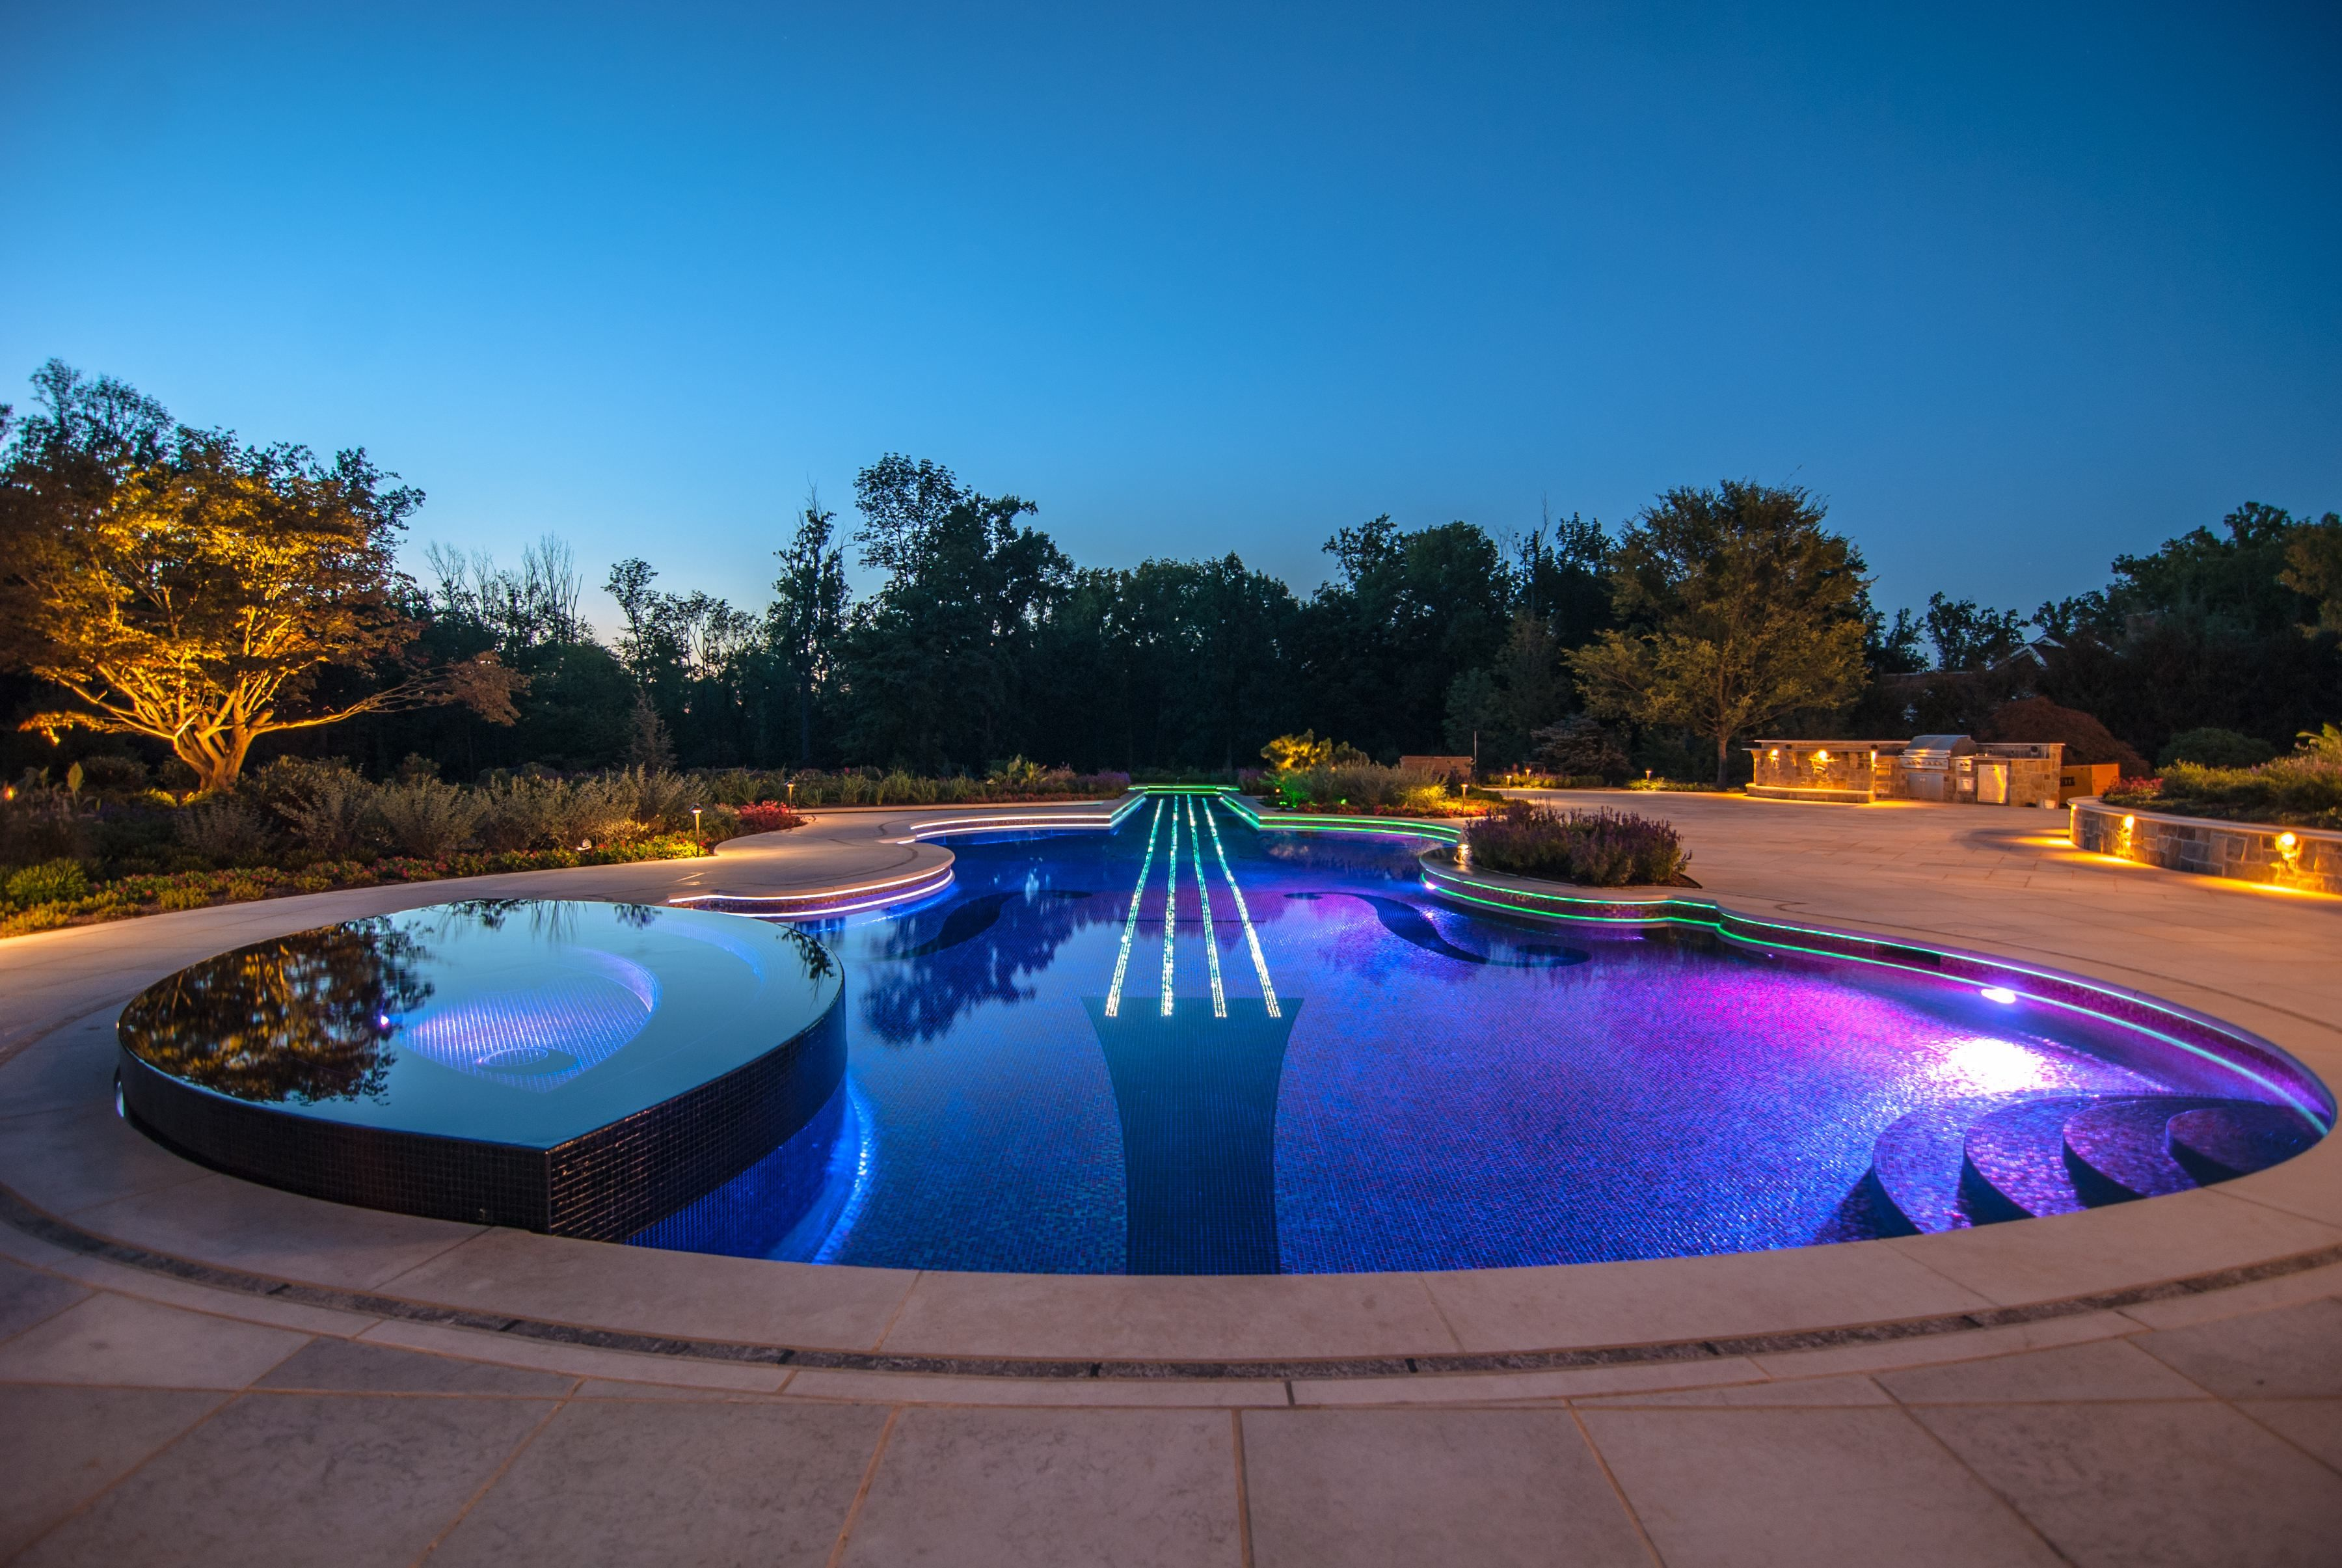 Bergen county nj landscape architecture office wins 2013 for Pool design website